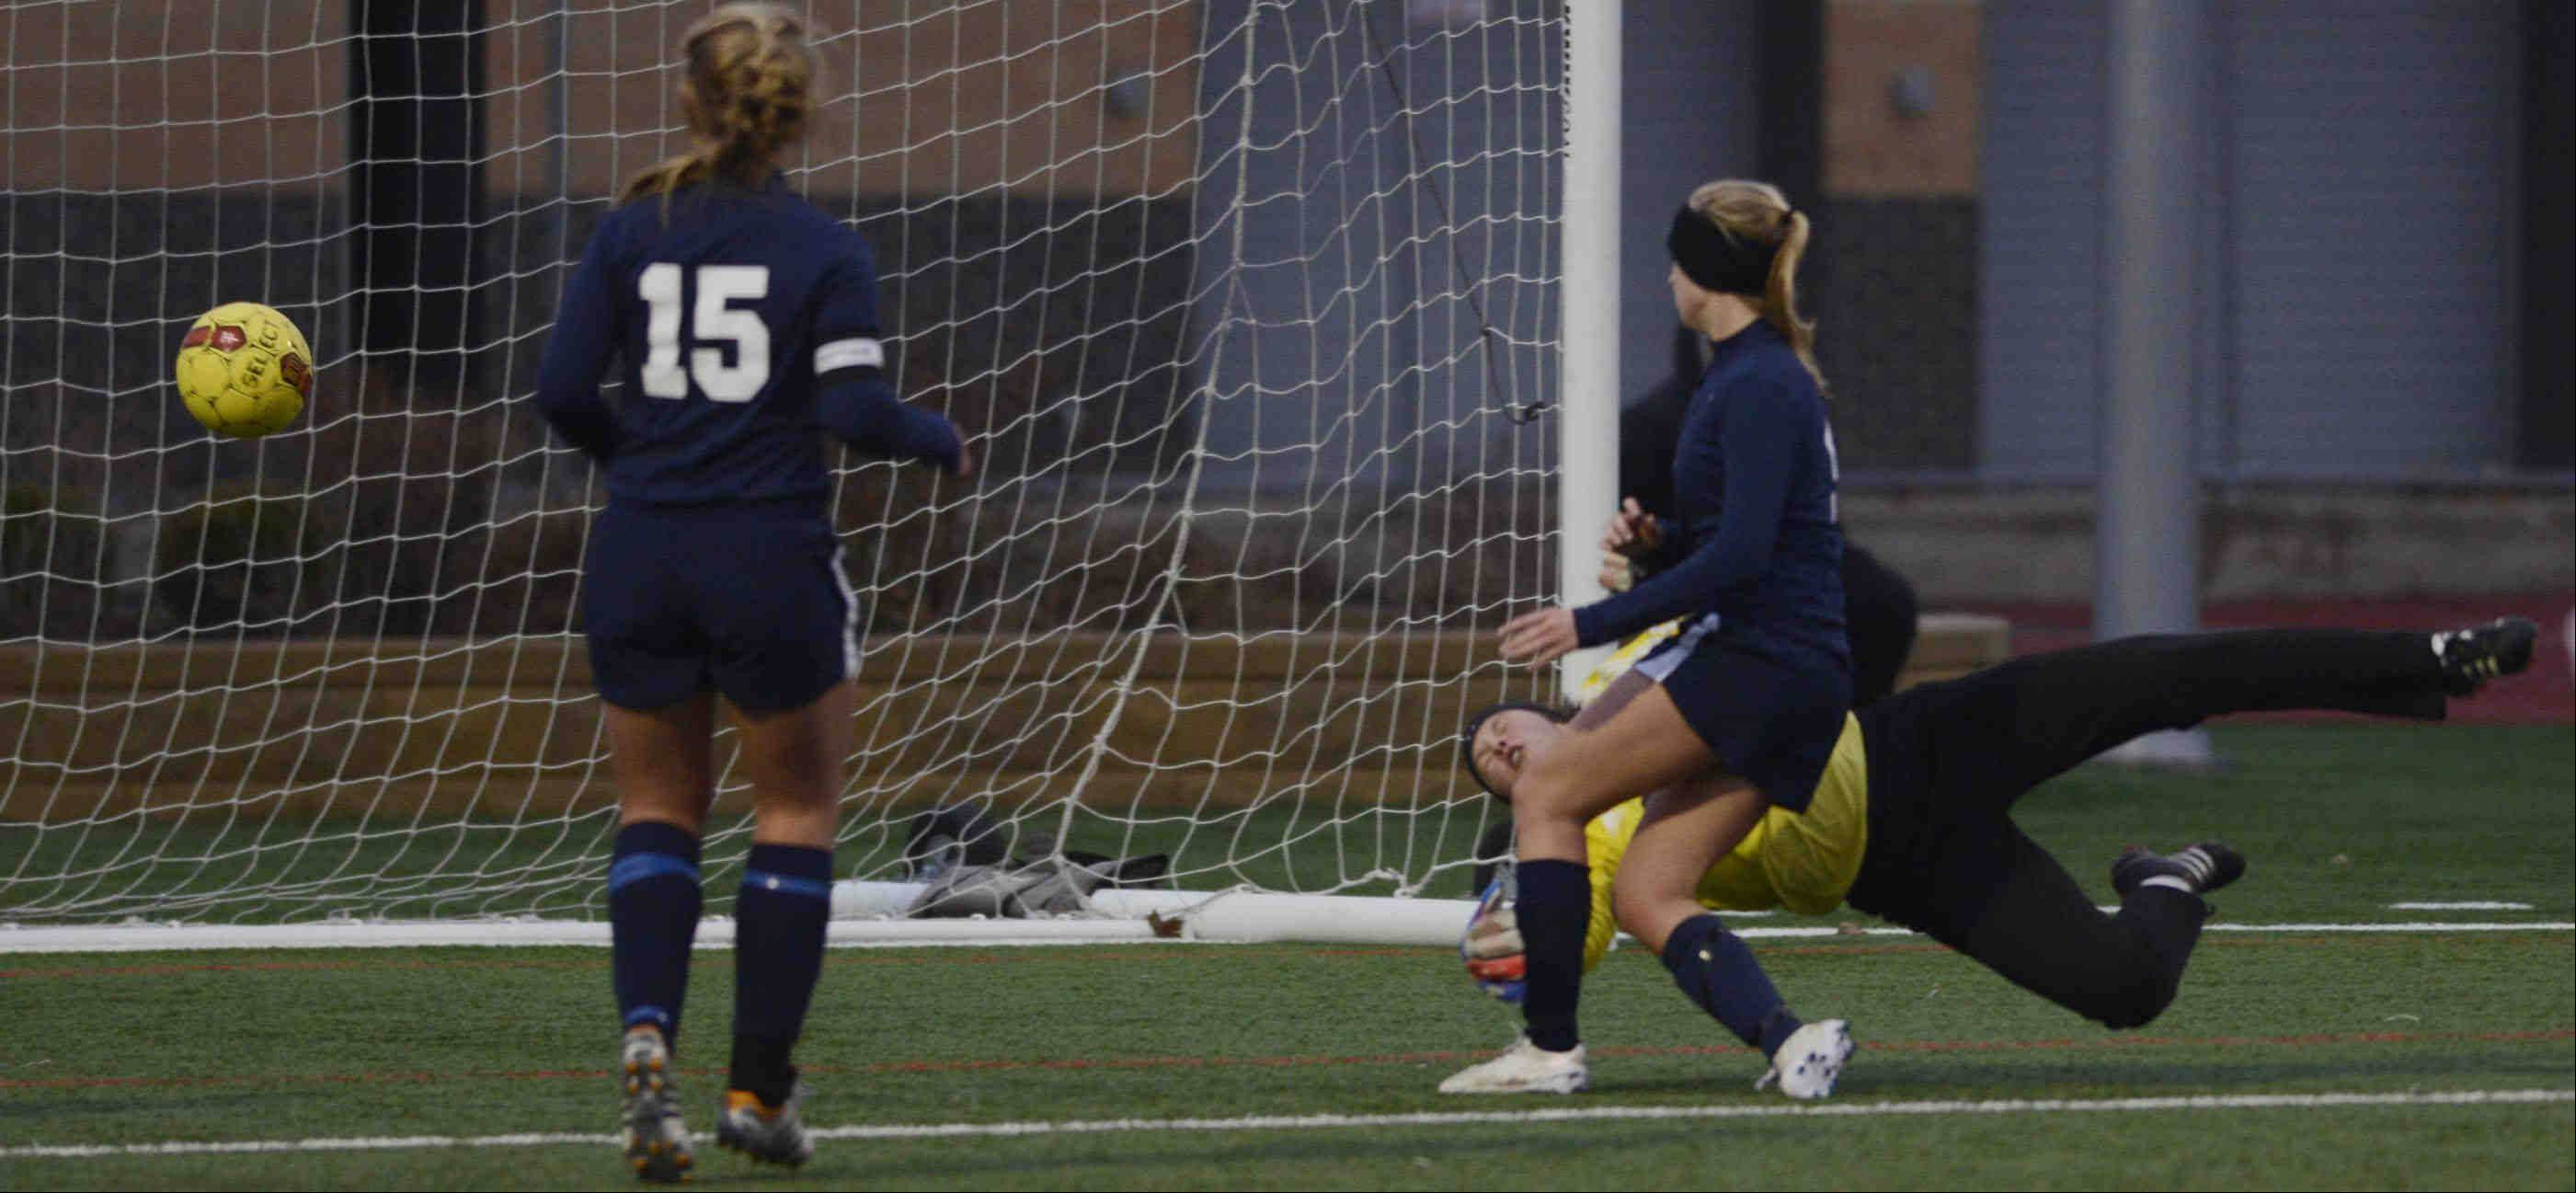 John Starks/jstarks@dailyherald.comRosary goalkeeper Lauren Frasca can't stop a shot by West Aurora's Samantha O Brien Wednesday in Aurora. West Aurora's Reilly Kulakowski watches the ball bounce into the net.